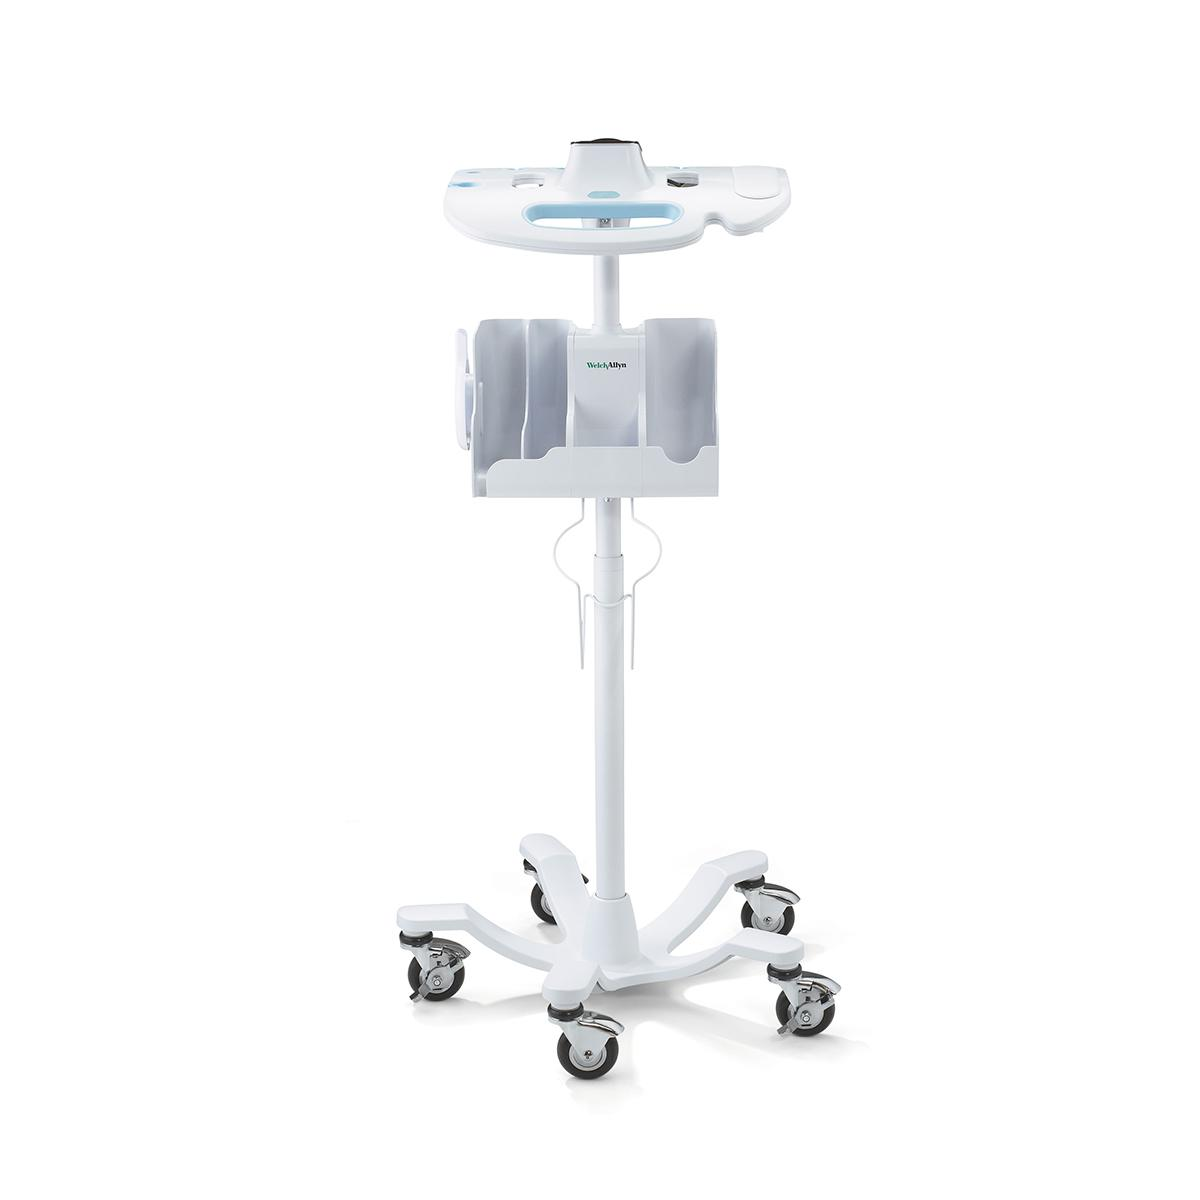 Mobile stand for Connex Vital Signs Monitor, front view